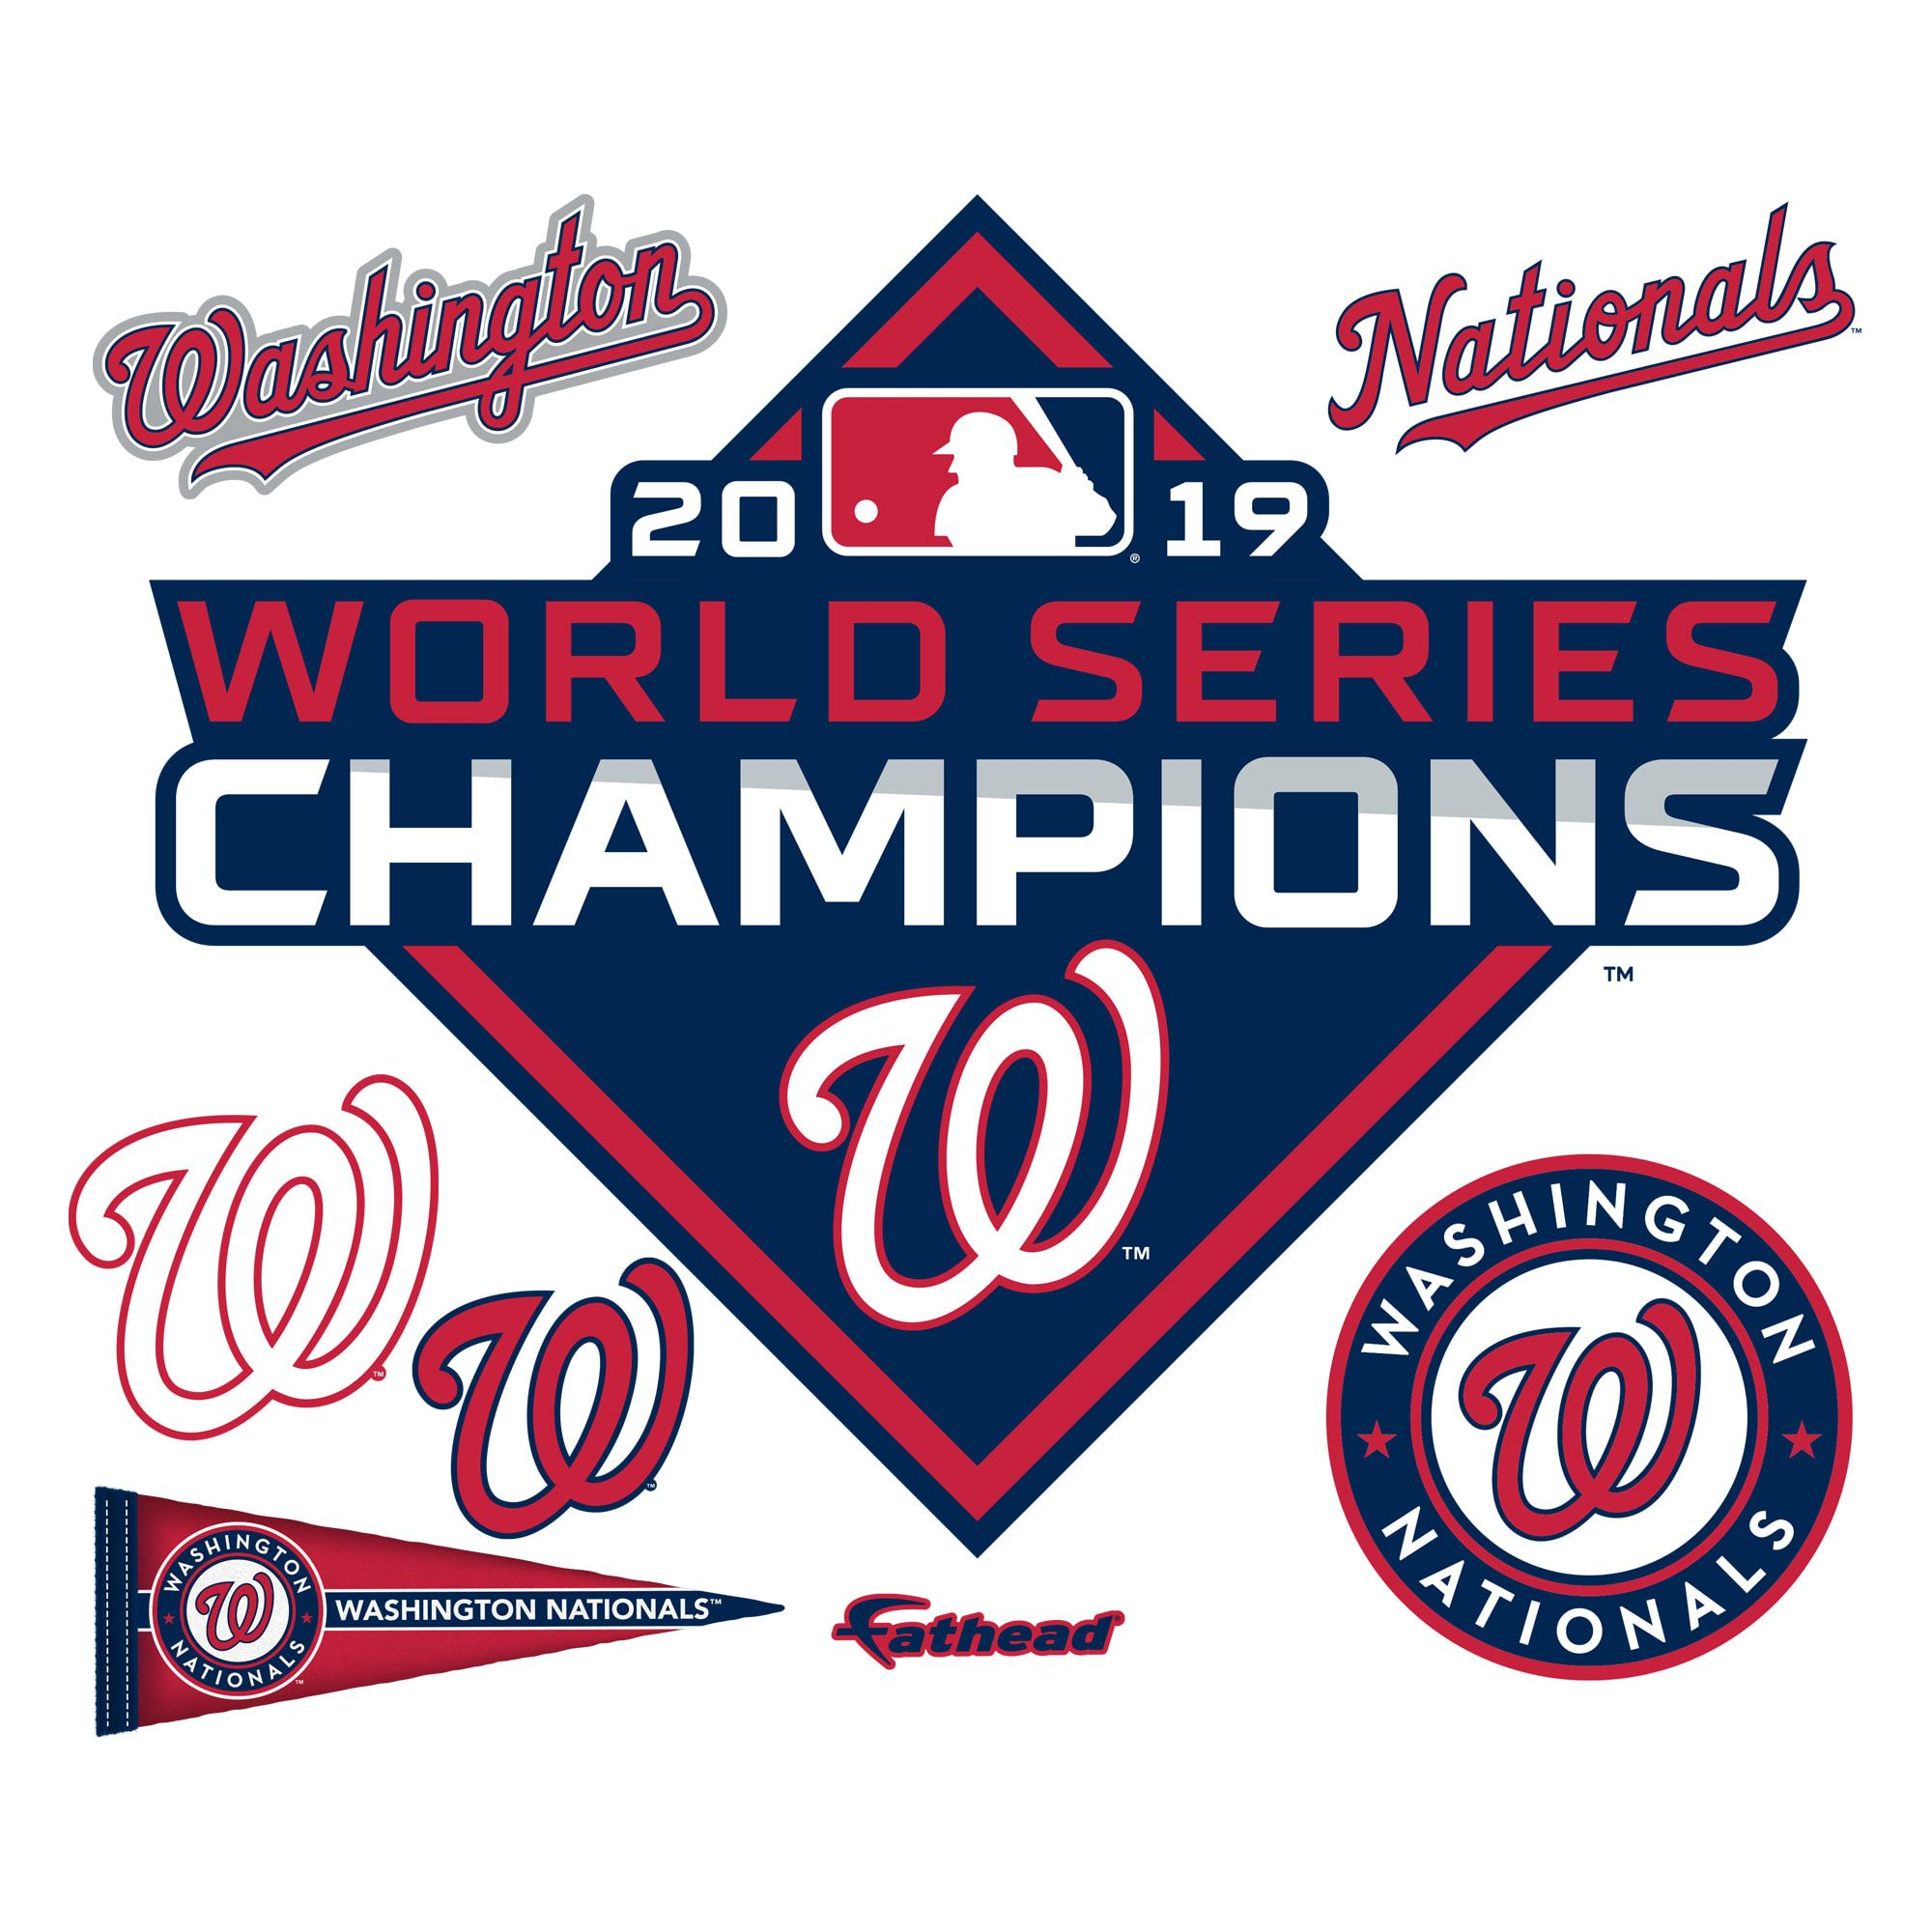 Washington Nationals 2019 World Series Champions Logo Giant Officially Licensed Mlb Removable Wall Decal Washington Nationals World Series Washington